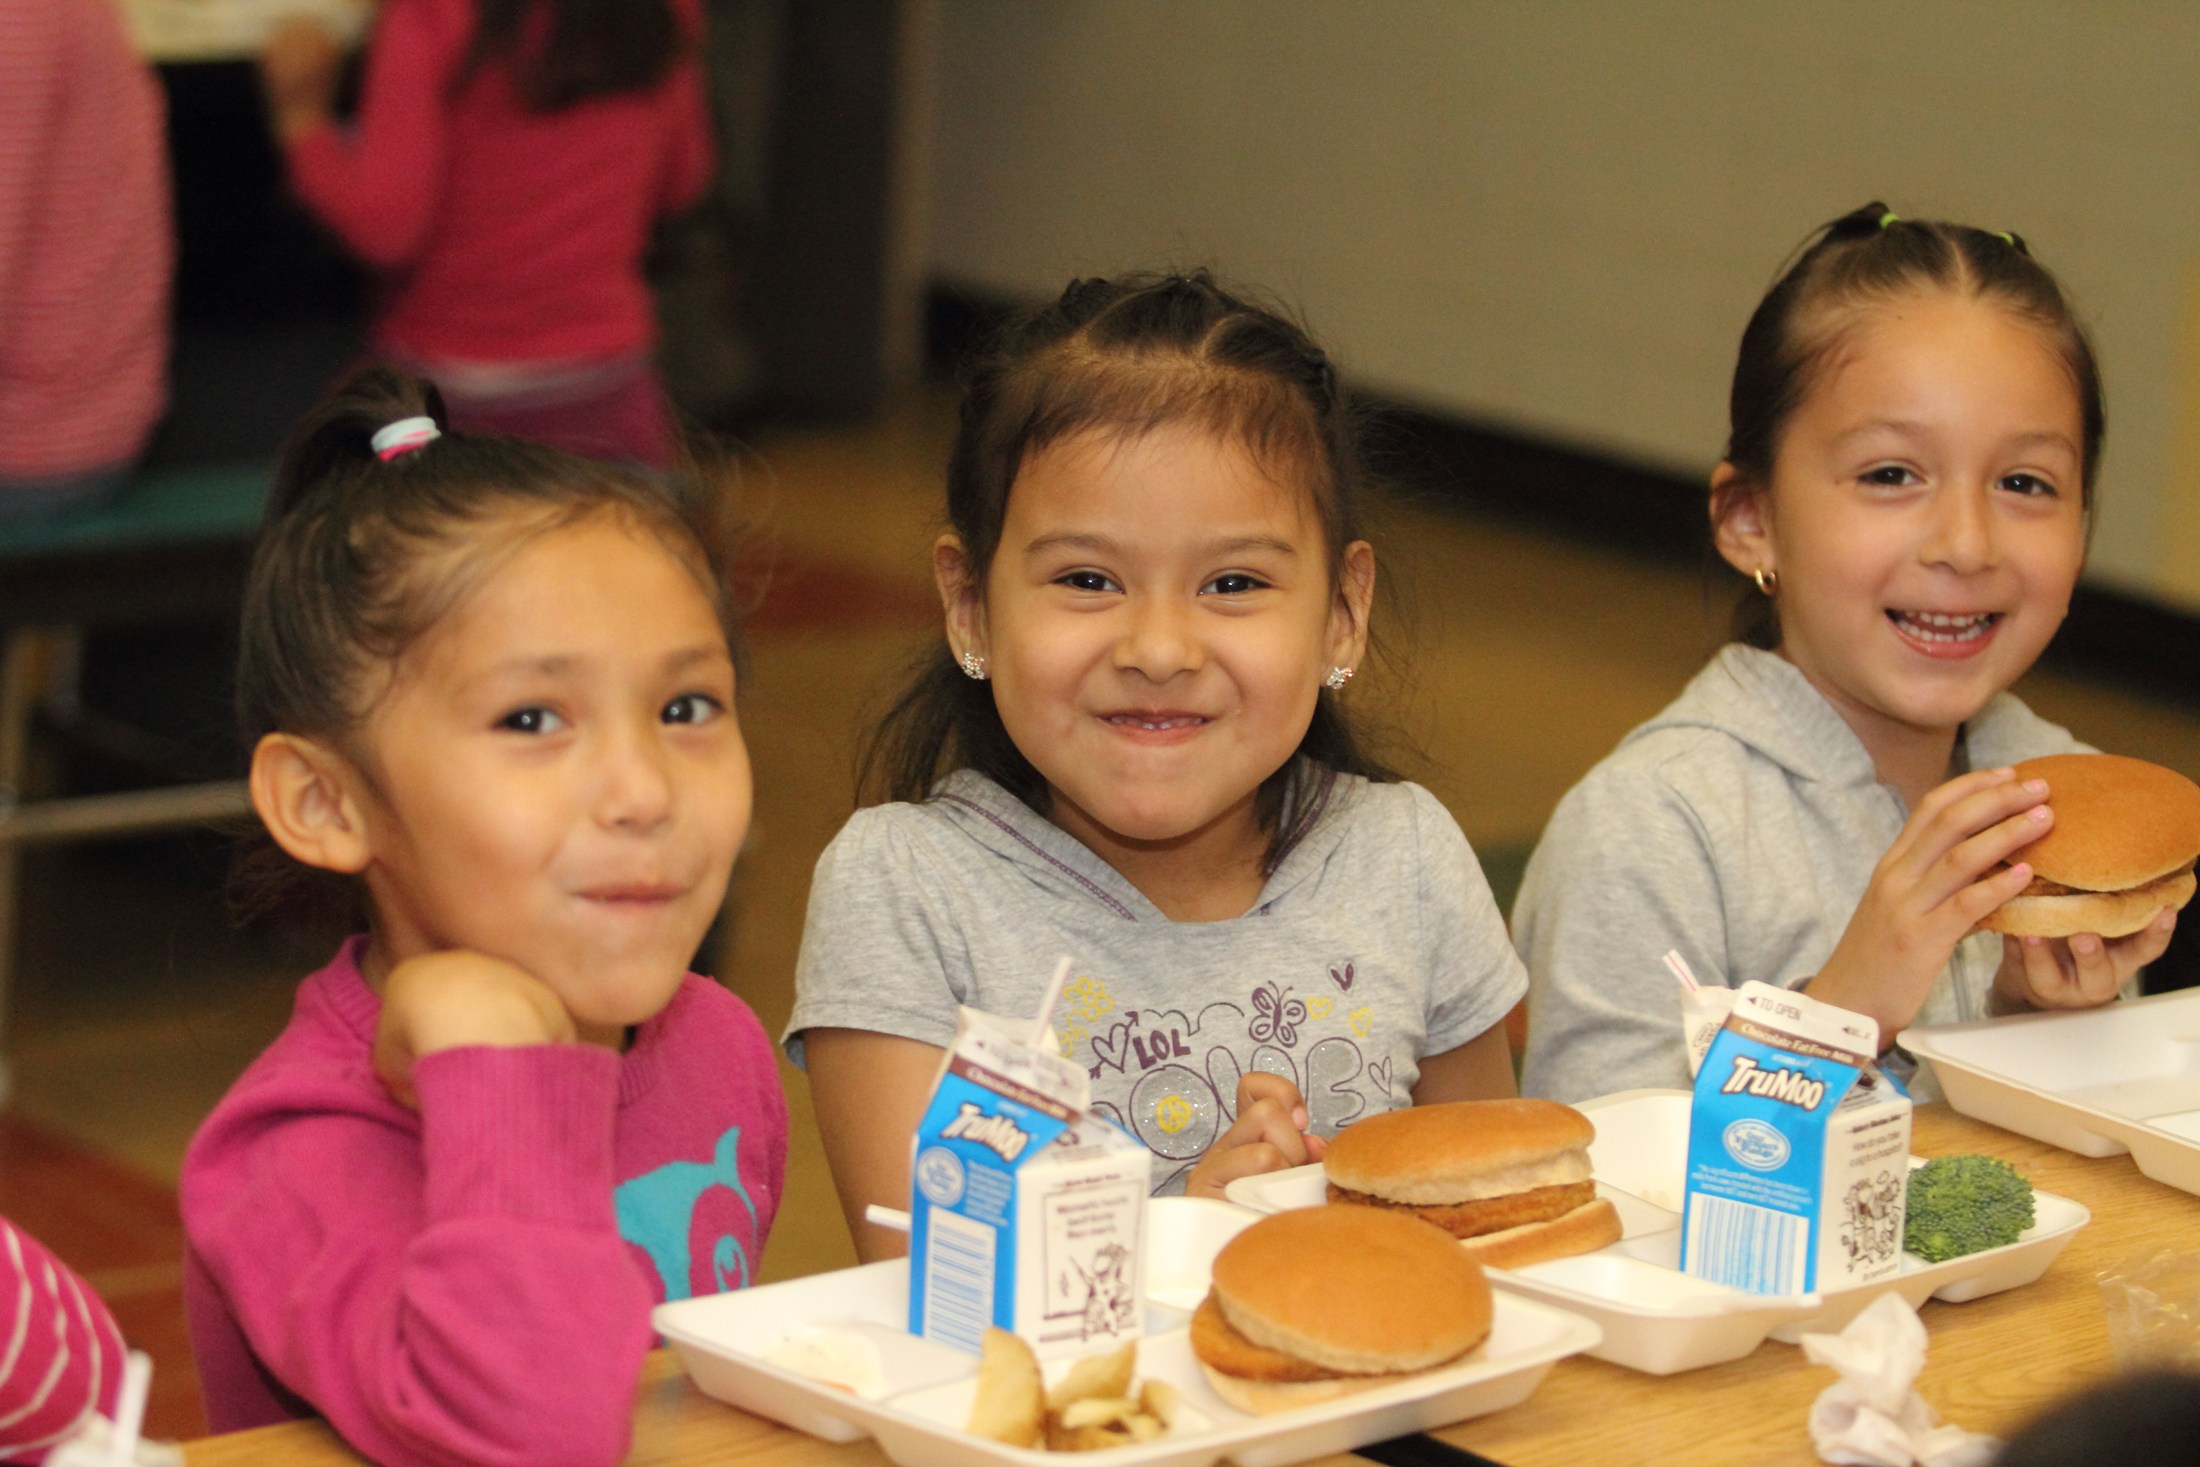 Windlake Elementary students smiling eating lunch